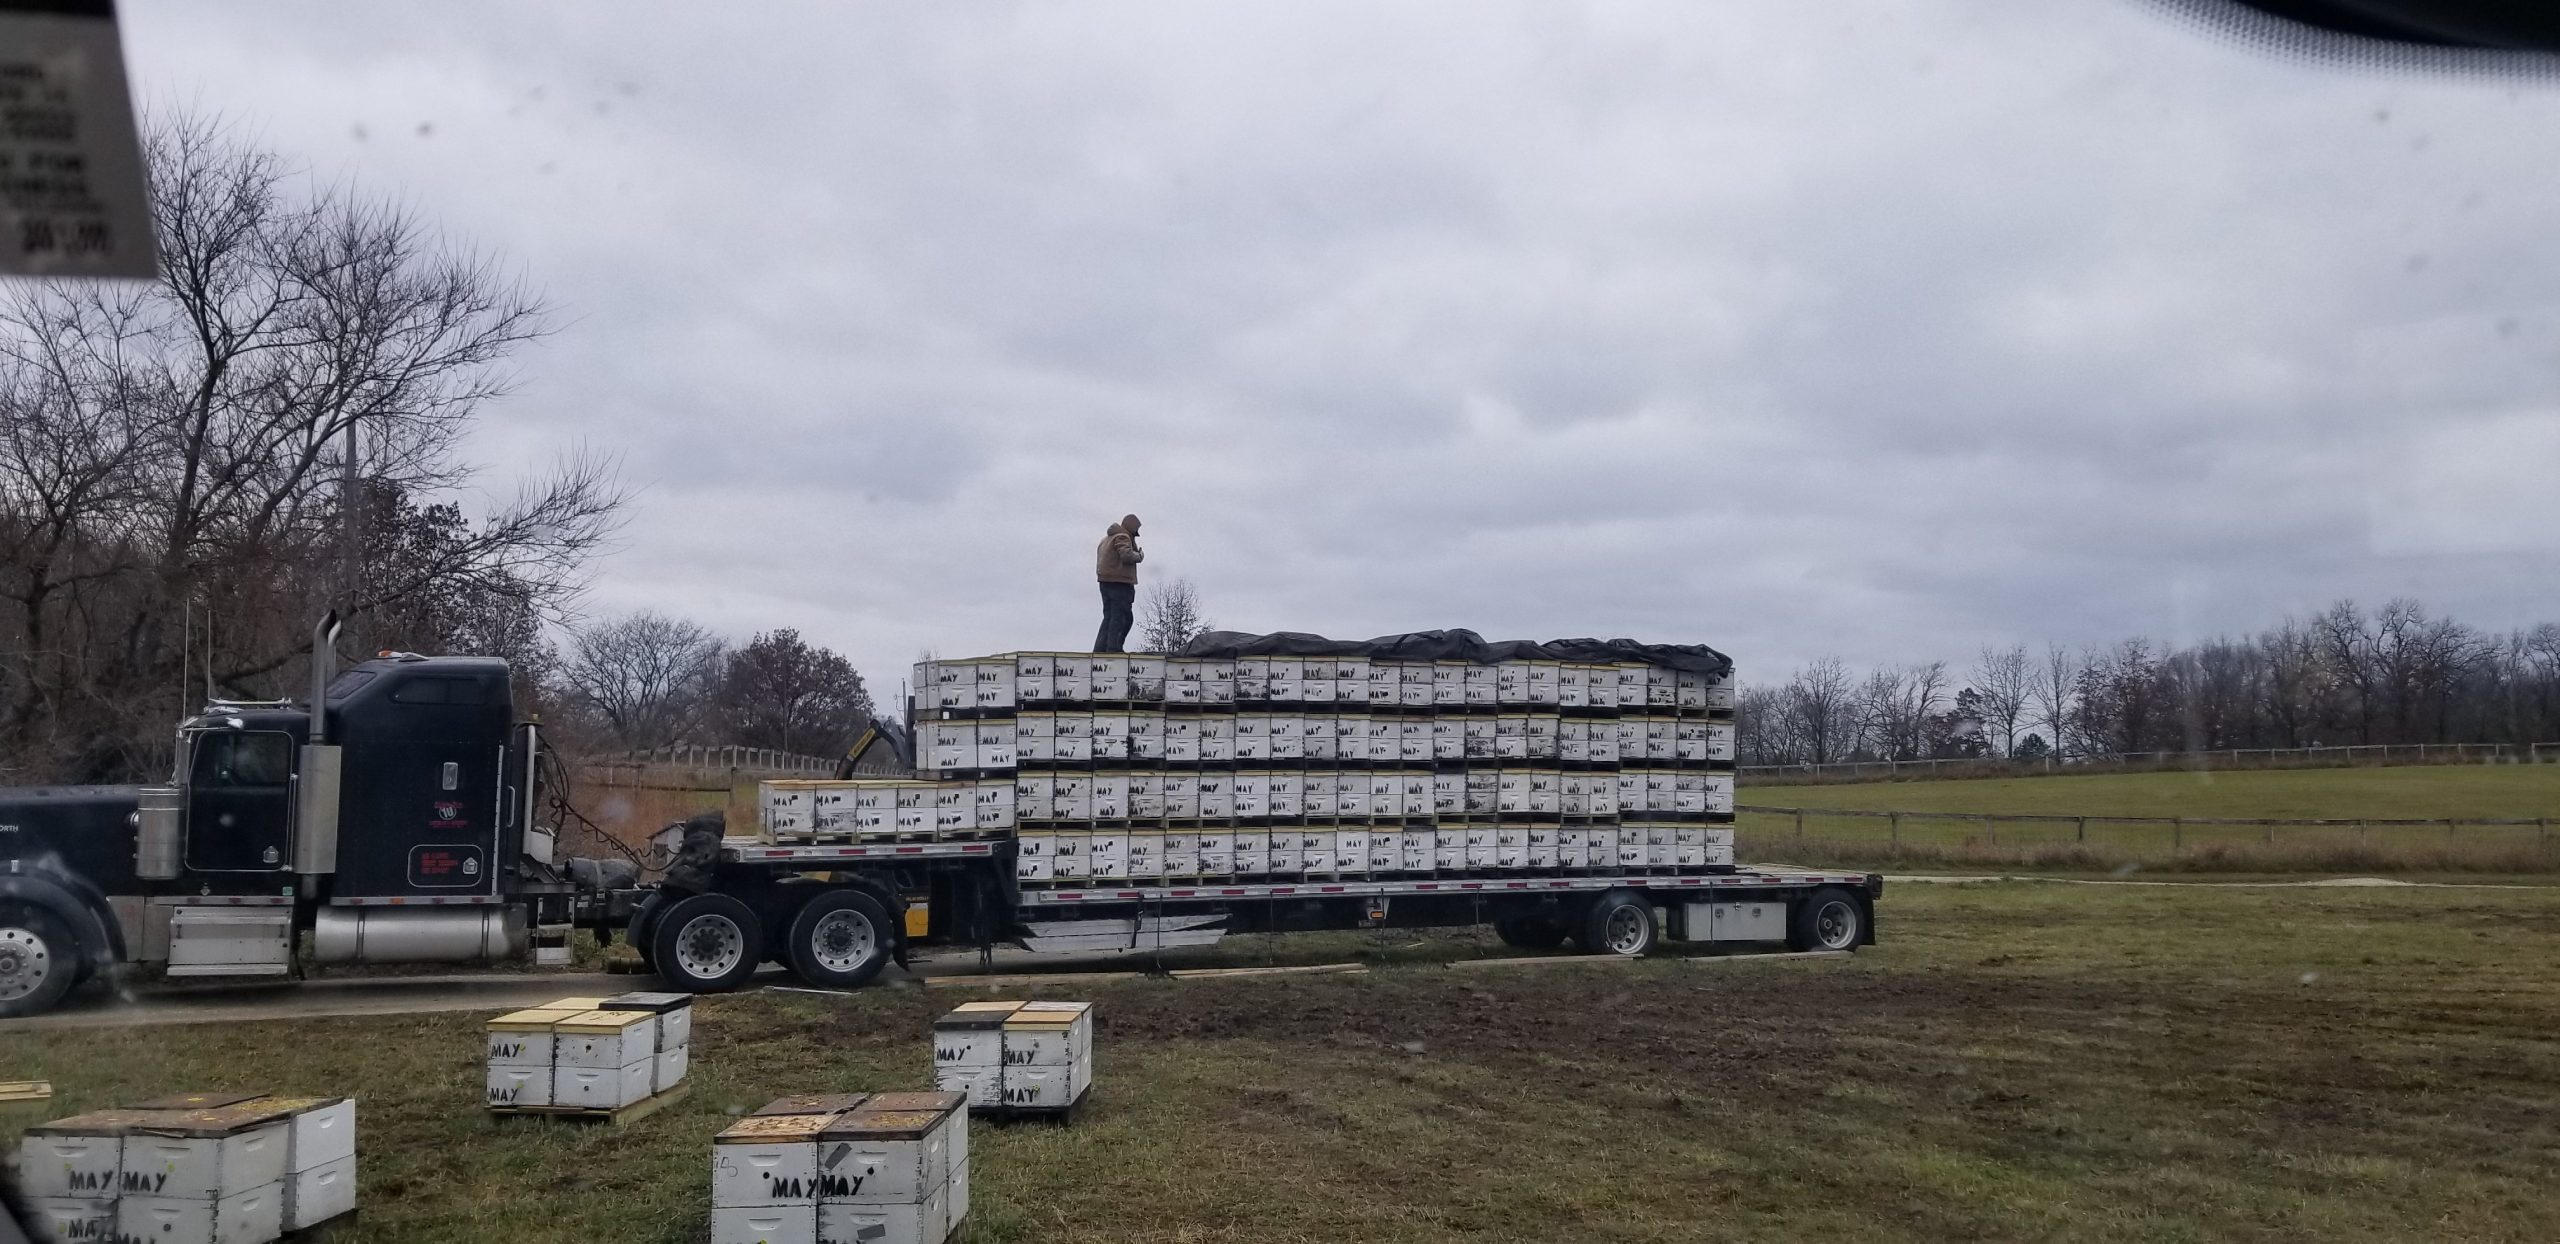 Adding Bees to Go to California for Almond Pollination